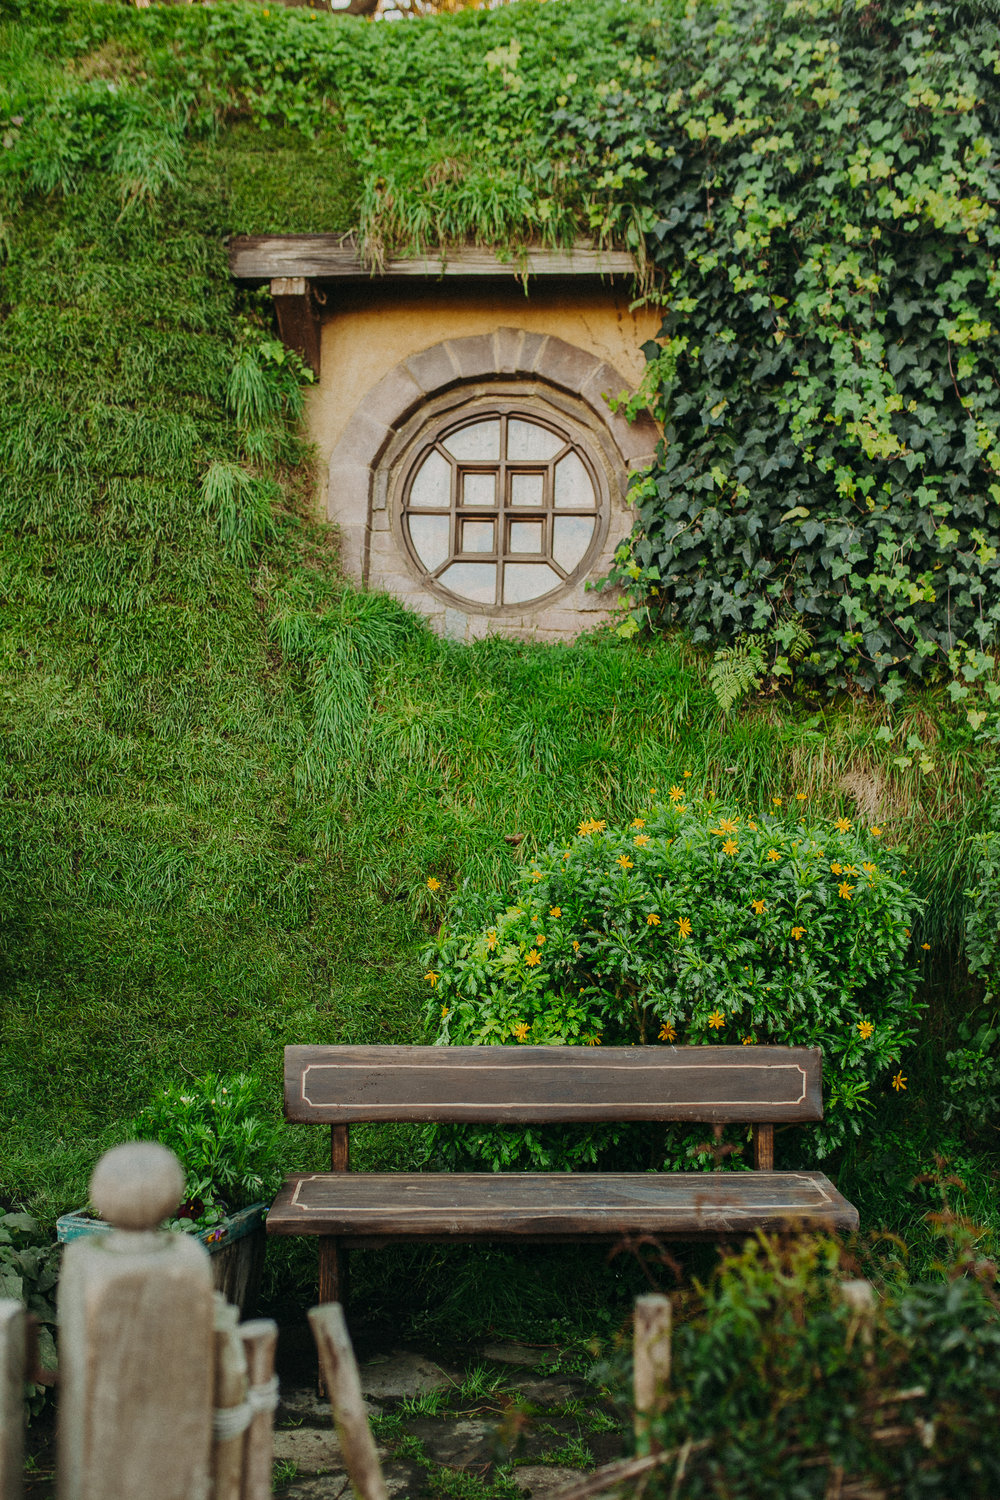 hobbiton-new-zealand-lord-of-the-rings-tour-8.jpg